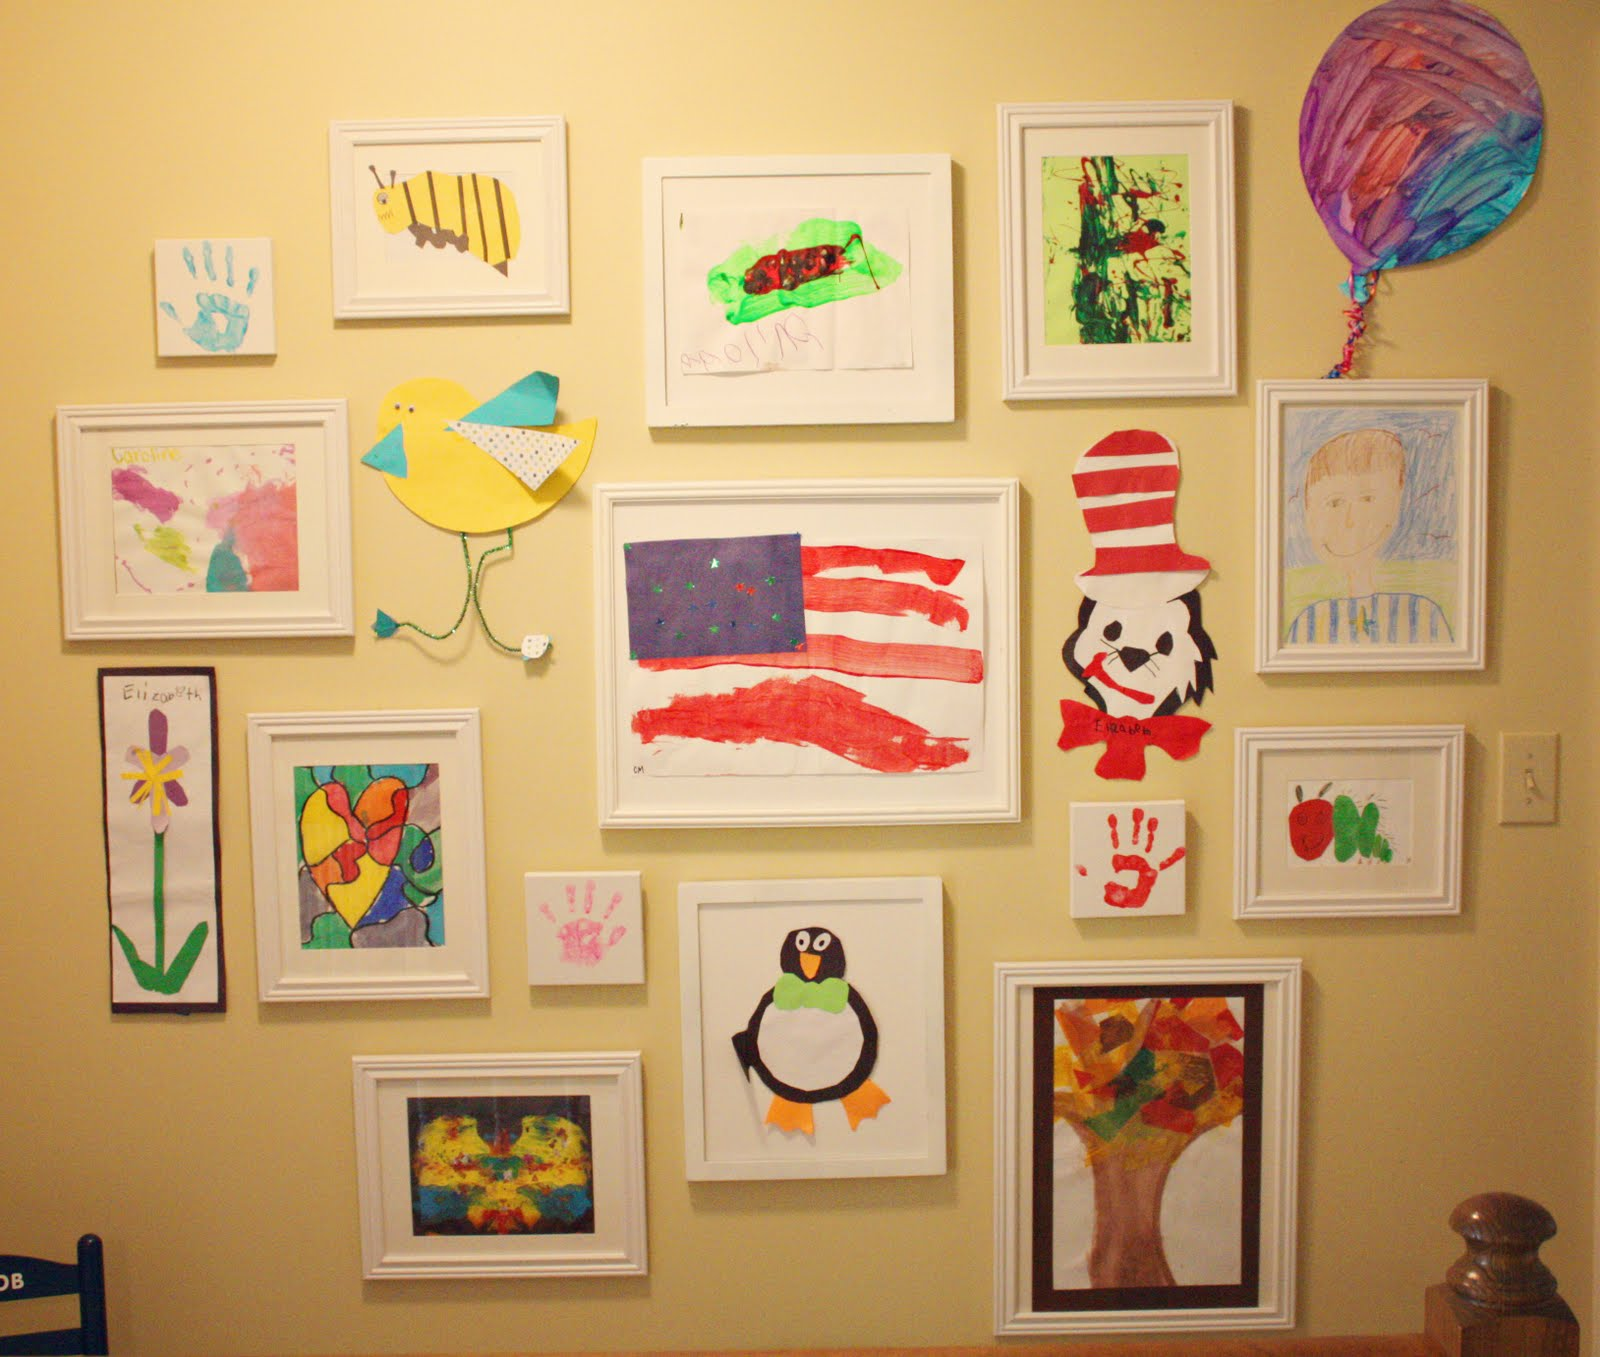 Old Fashioned Kids Art Wall Display Image - The Wall Art Decorations ...